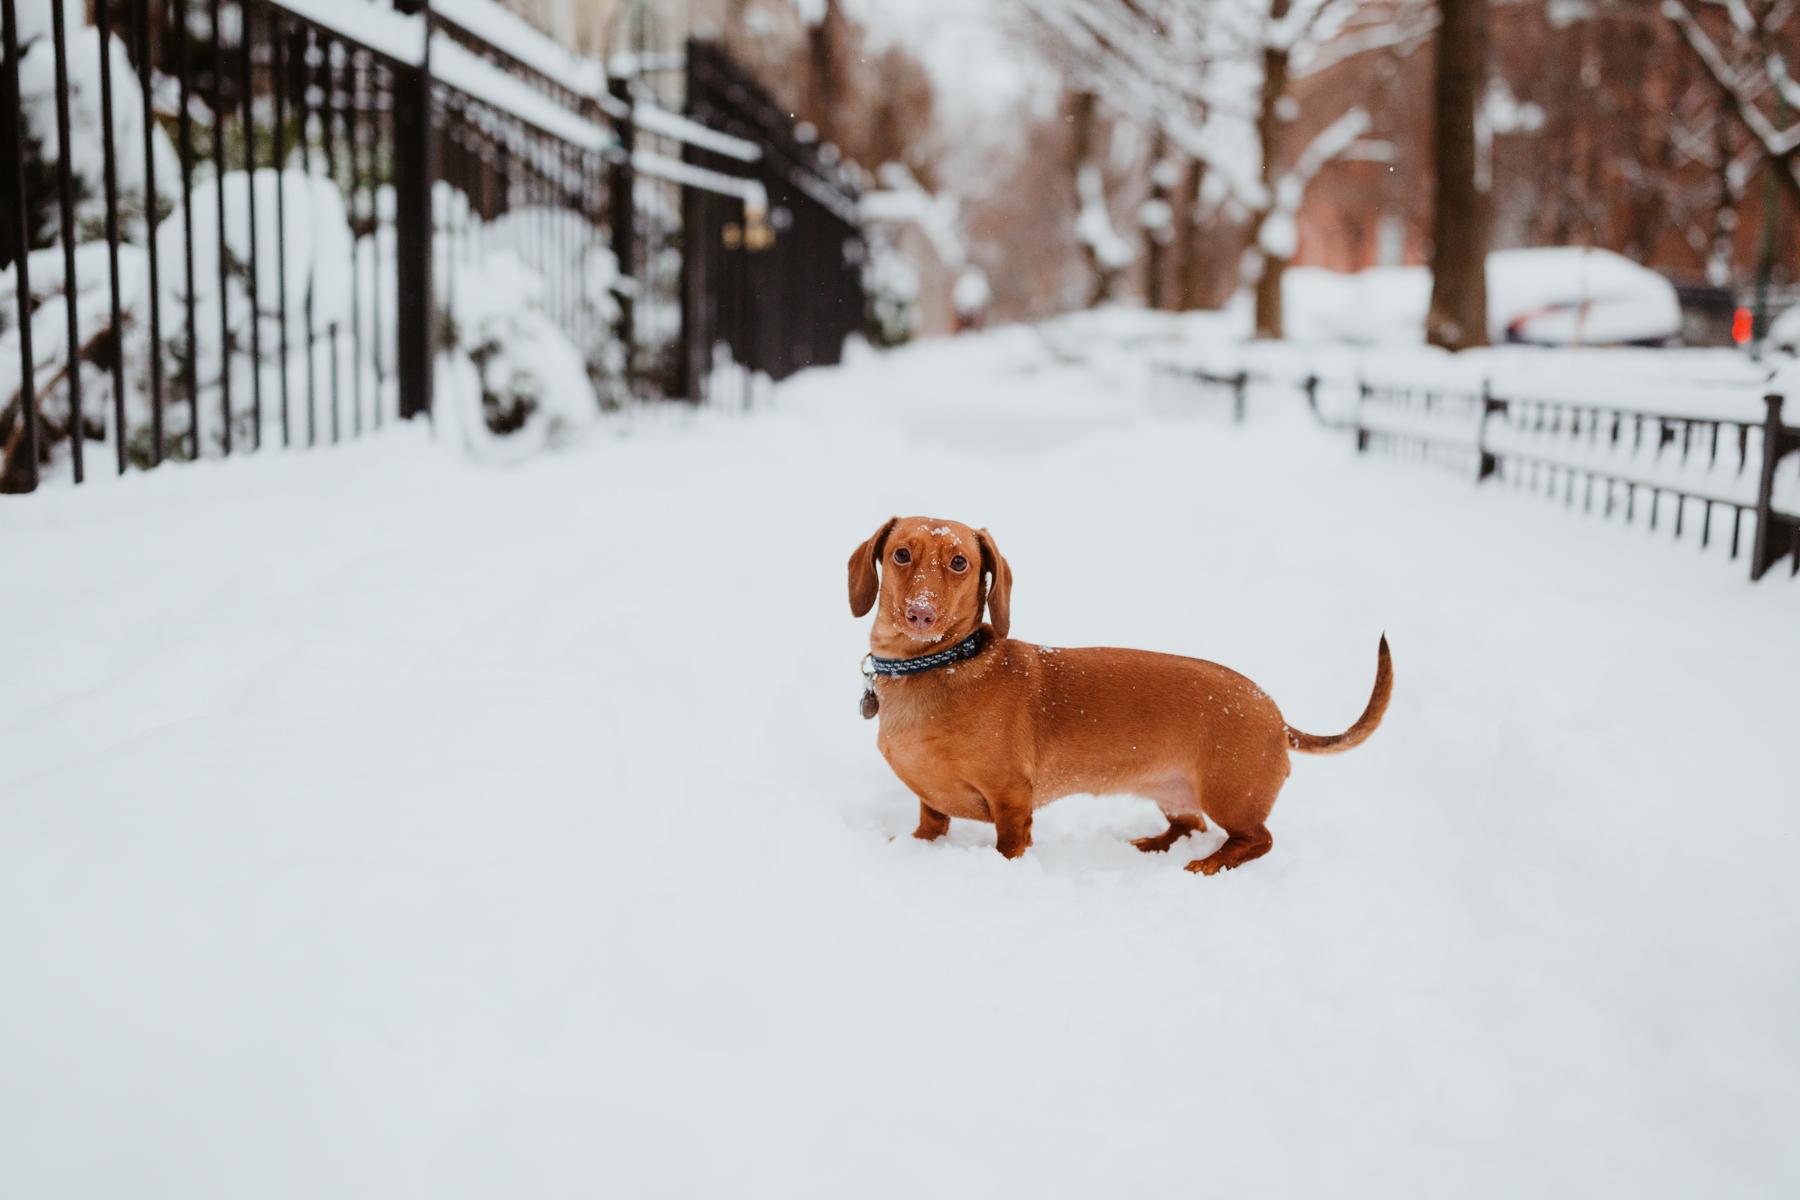 Noodleloves the snow